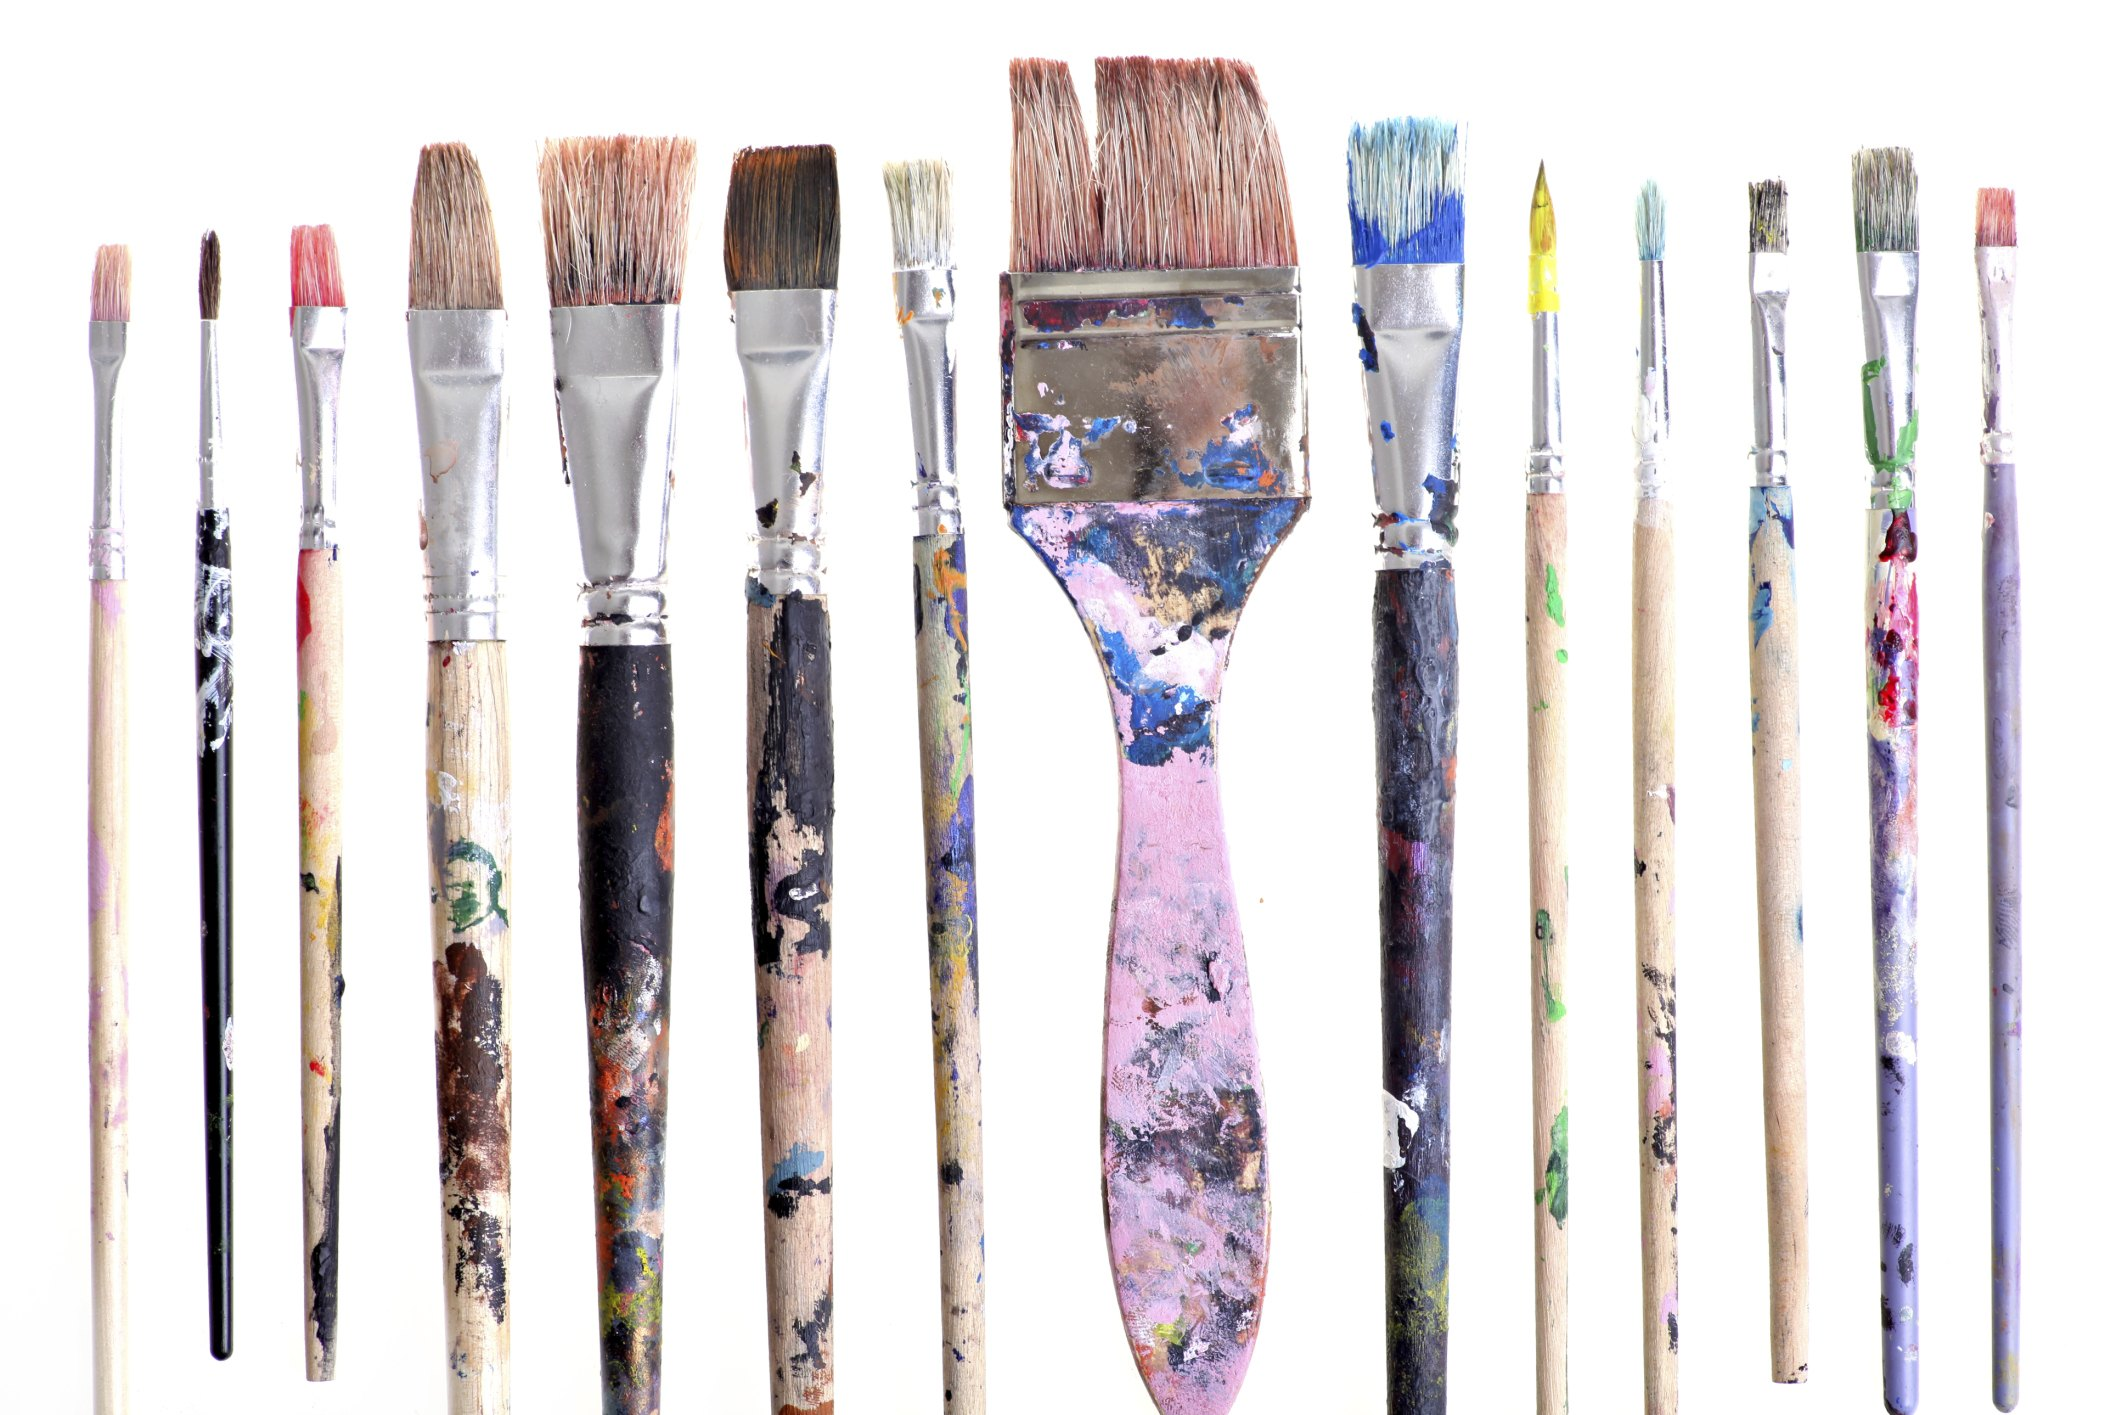 Rubbing Alcohol To Clean Paint Brushes